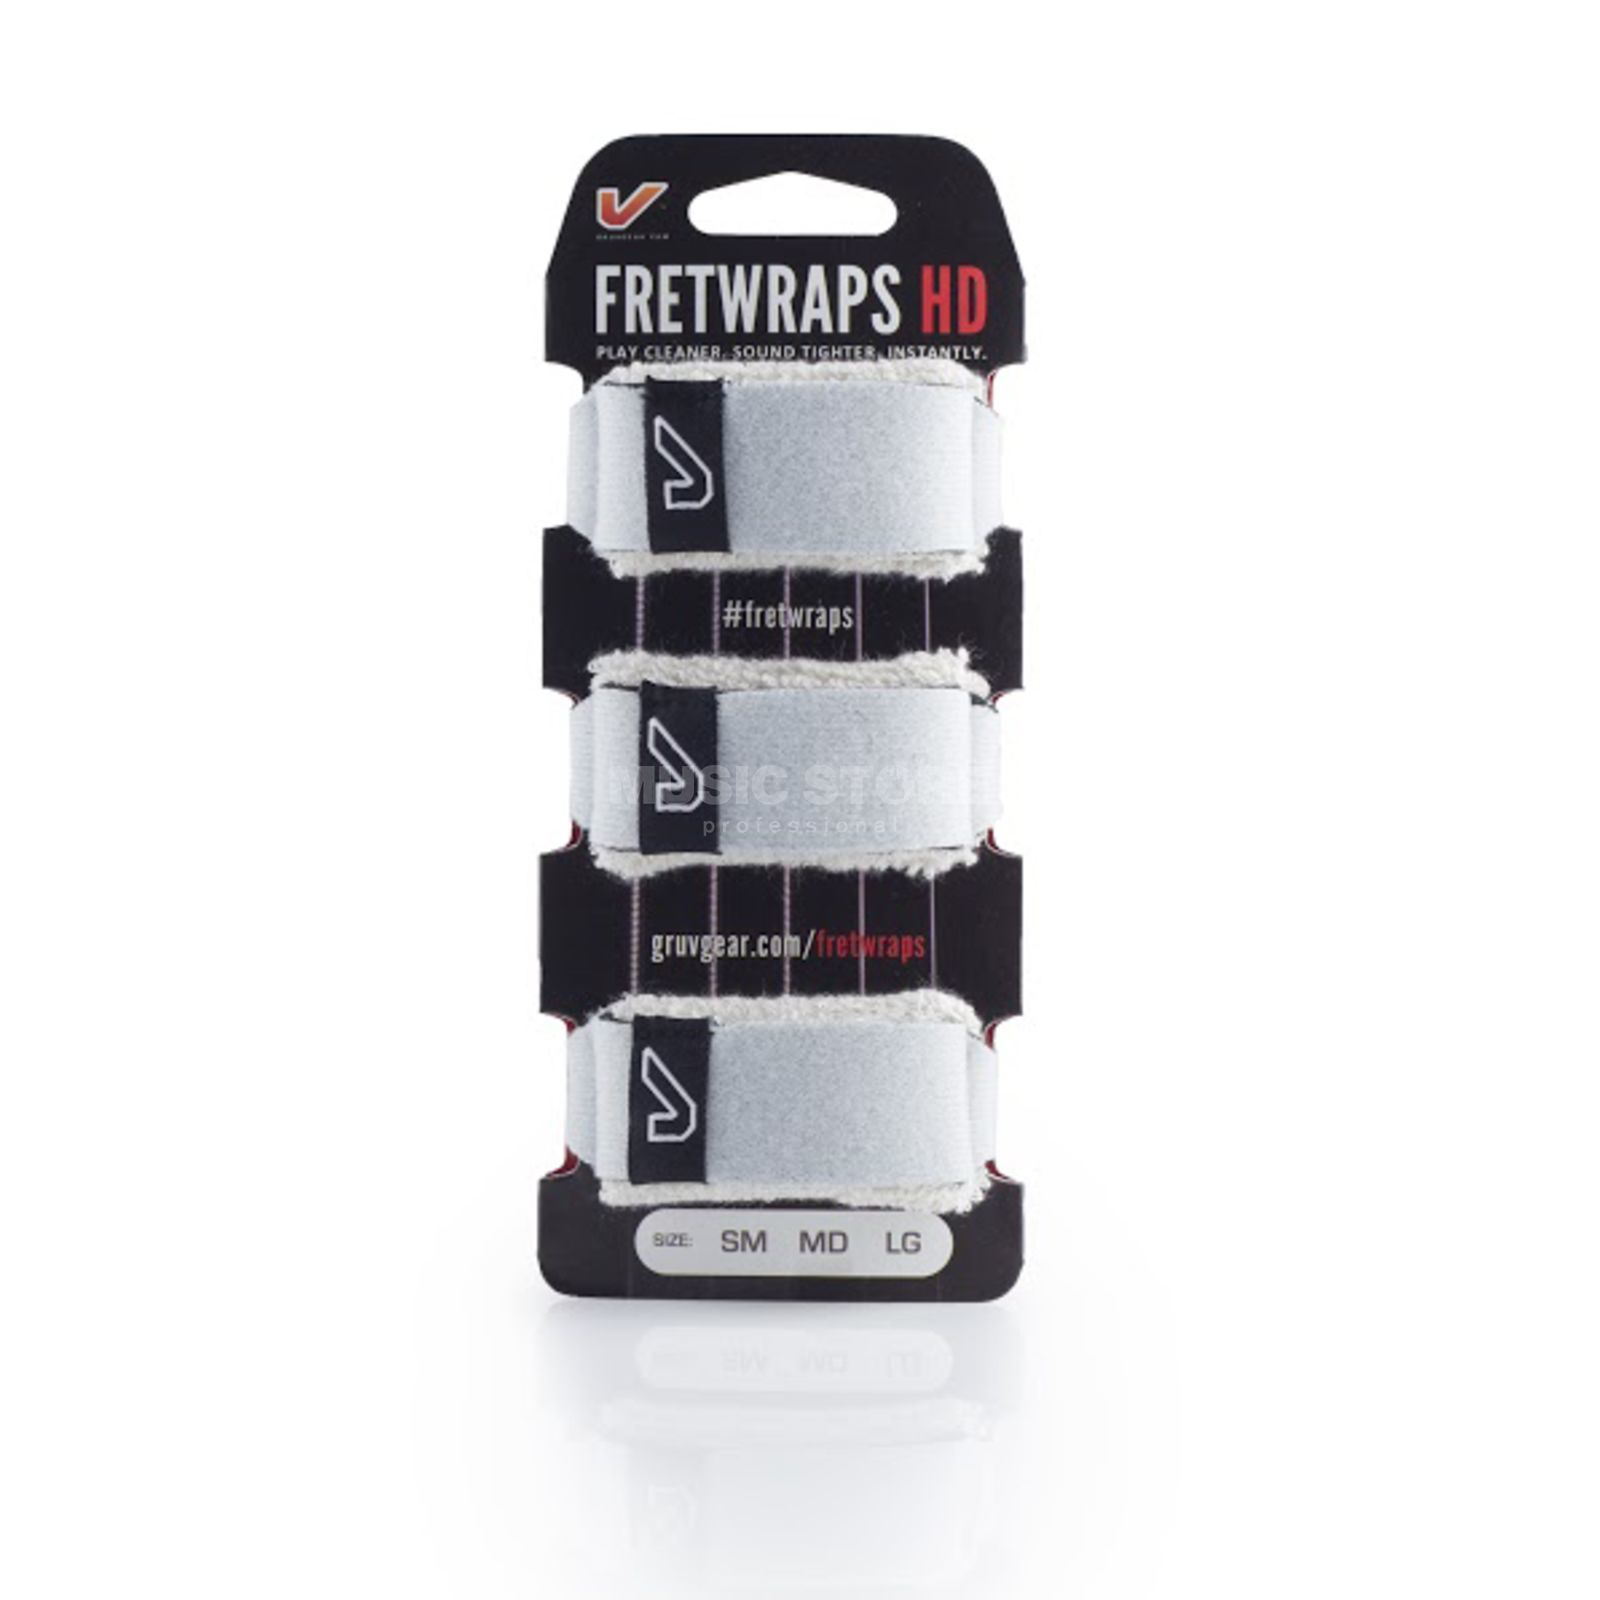 Gruv Gear Fret Wraps HD Stone White XL, 3er Pack Produktbild